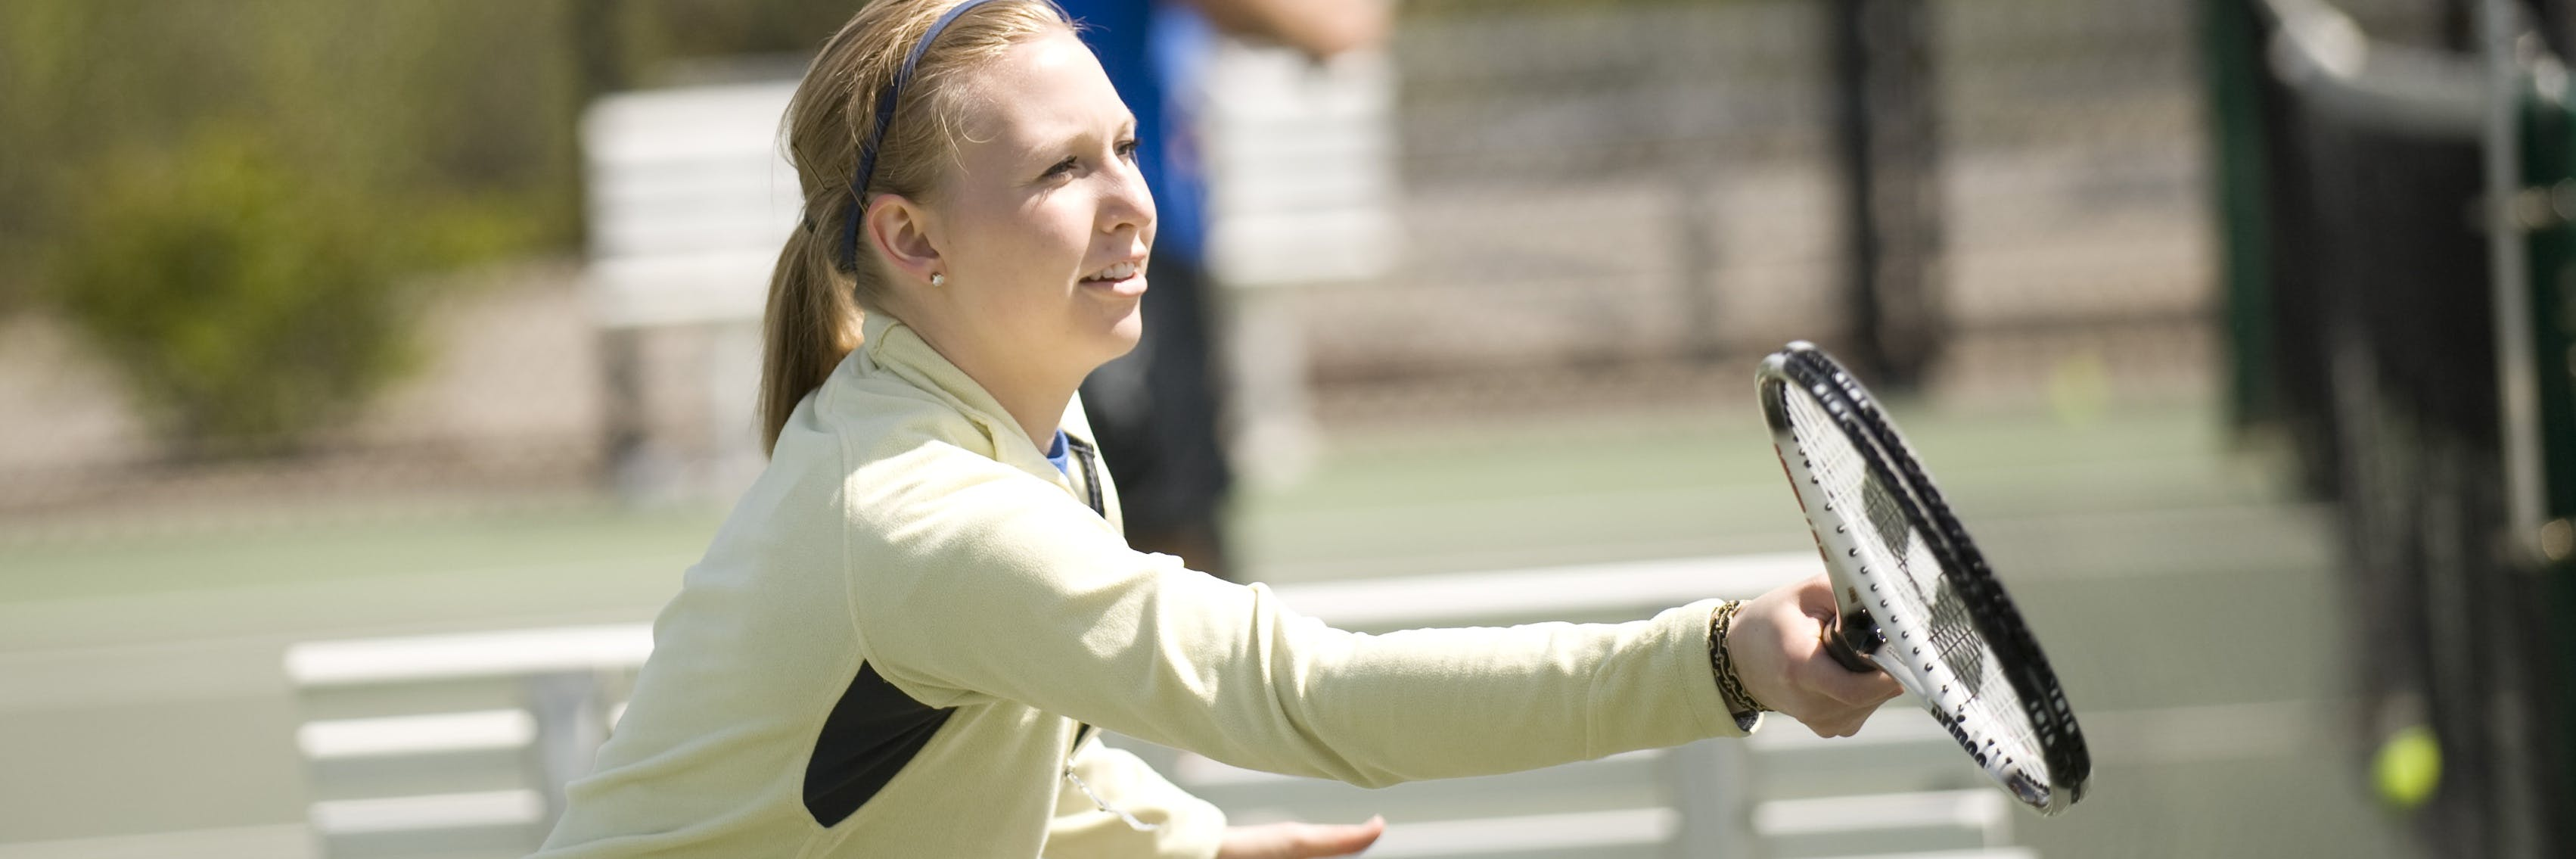 A student playing tennis